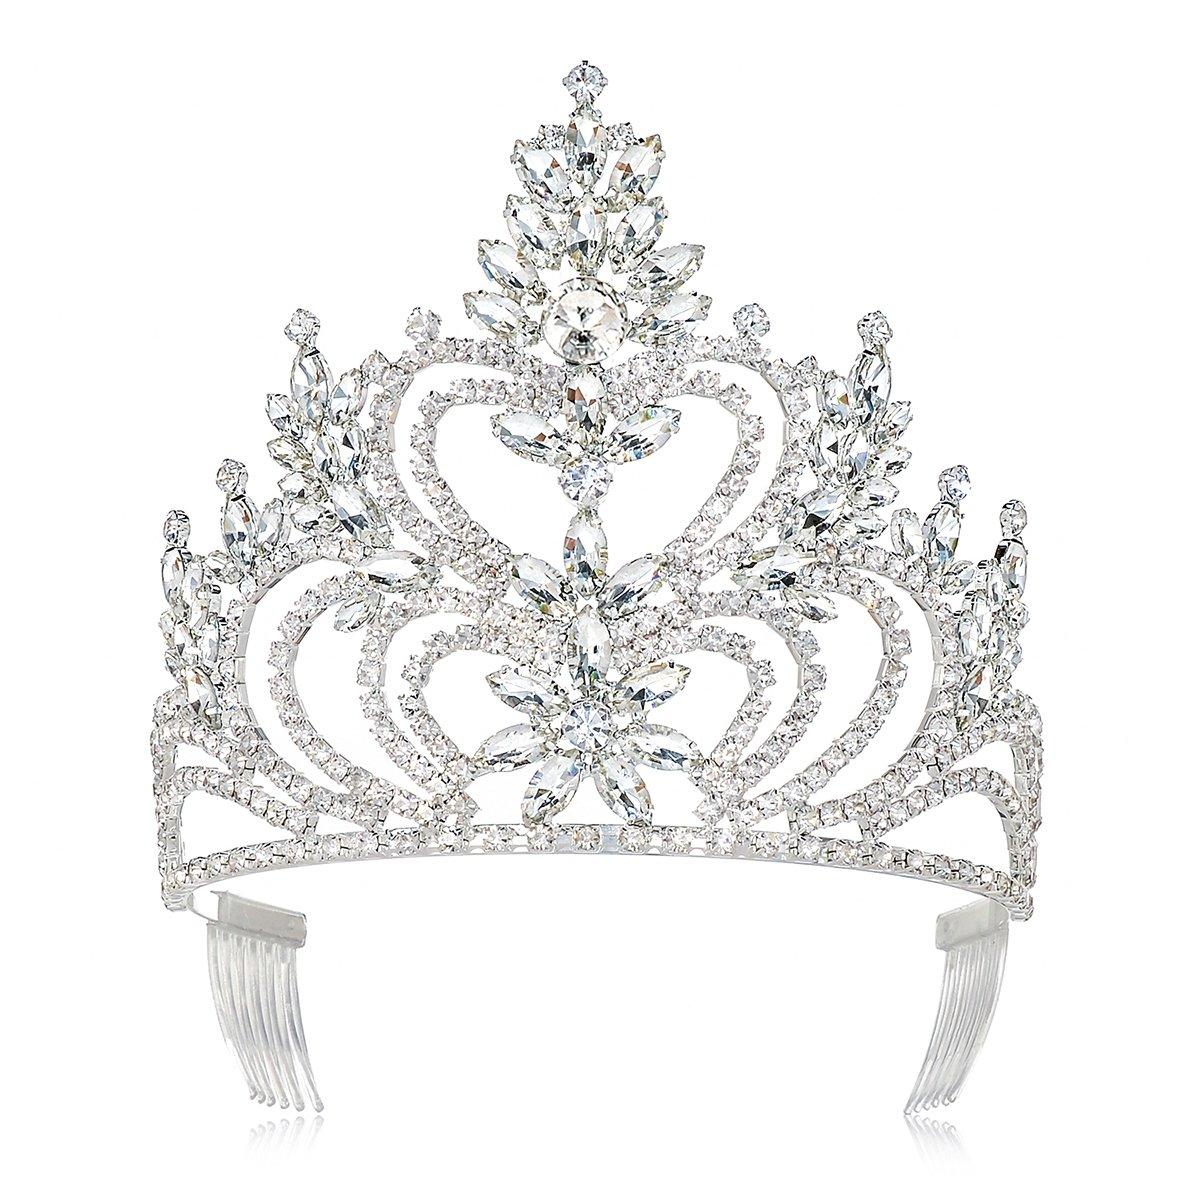 DcZeRong 5'' Tall Large Tiara Adult Women Birthday Pageant Prom Queen Silver Crystal Rhinestone Crown